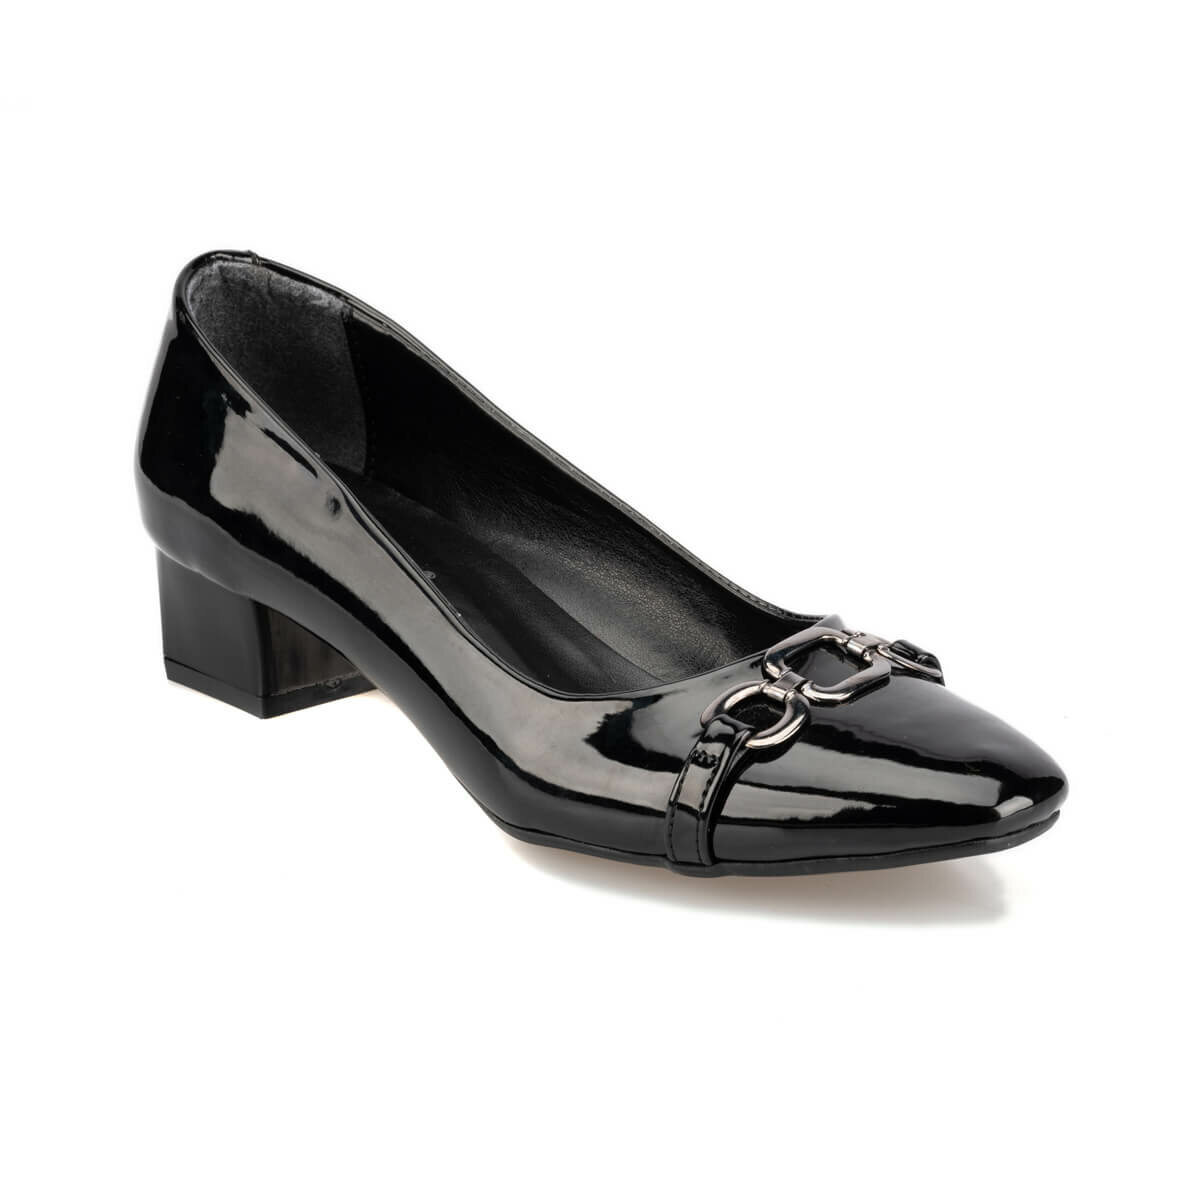 FLO 92.314052.Z Black Women Gova Shoes Polaris